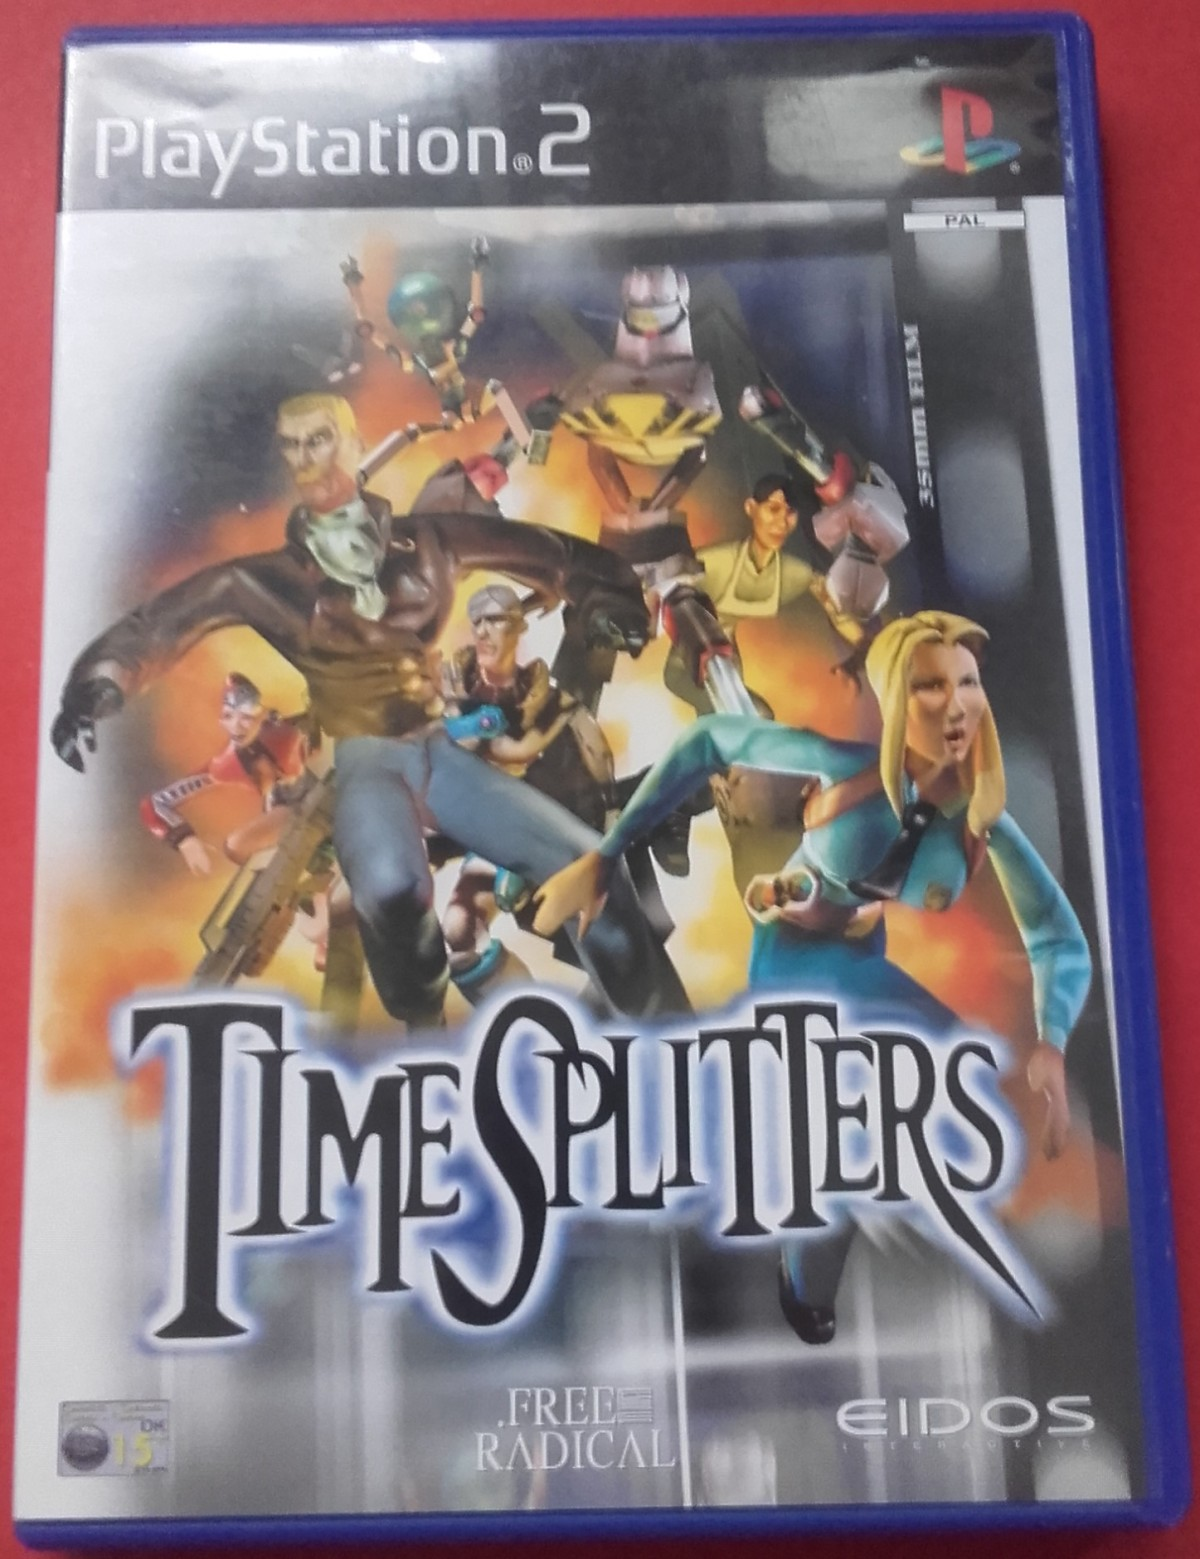 TimeSplitters – Critique